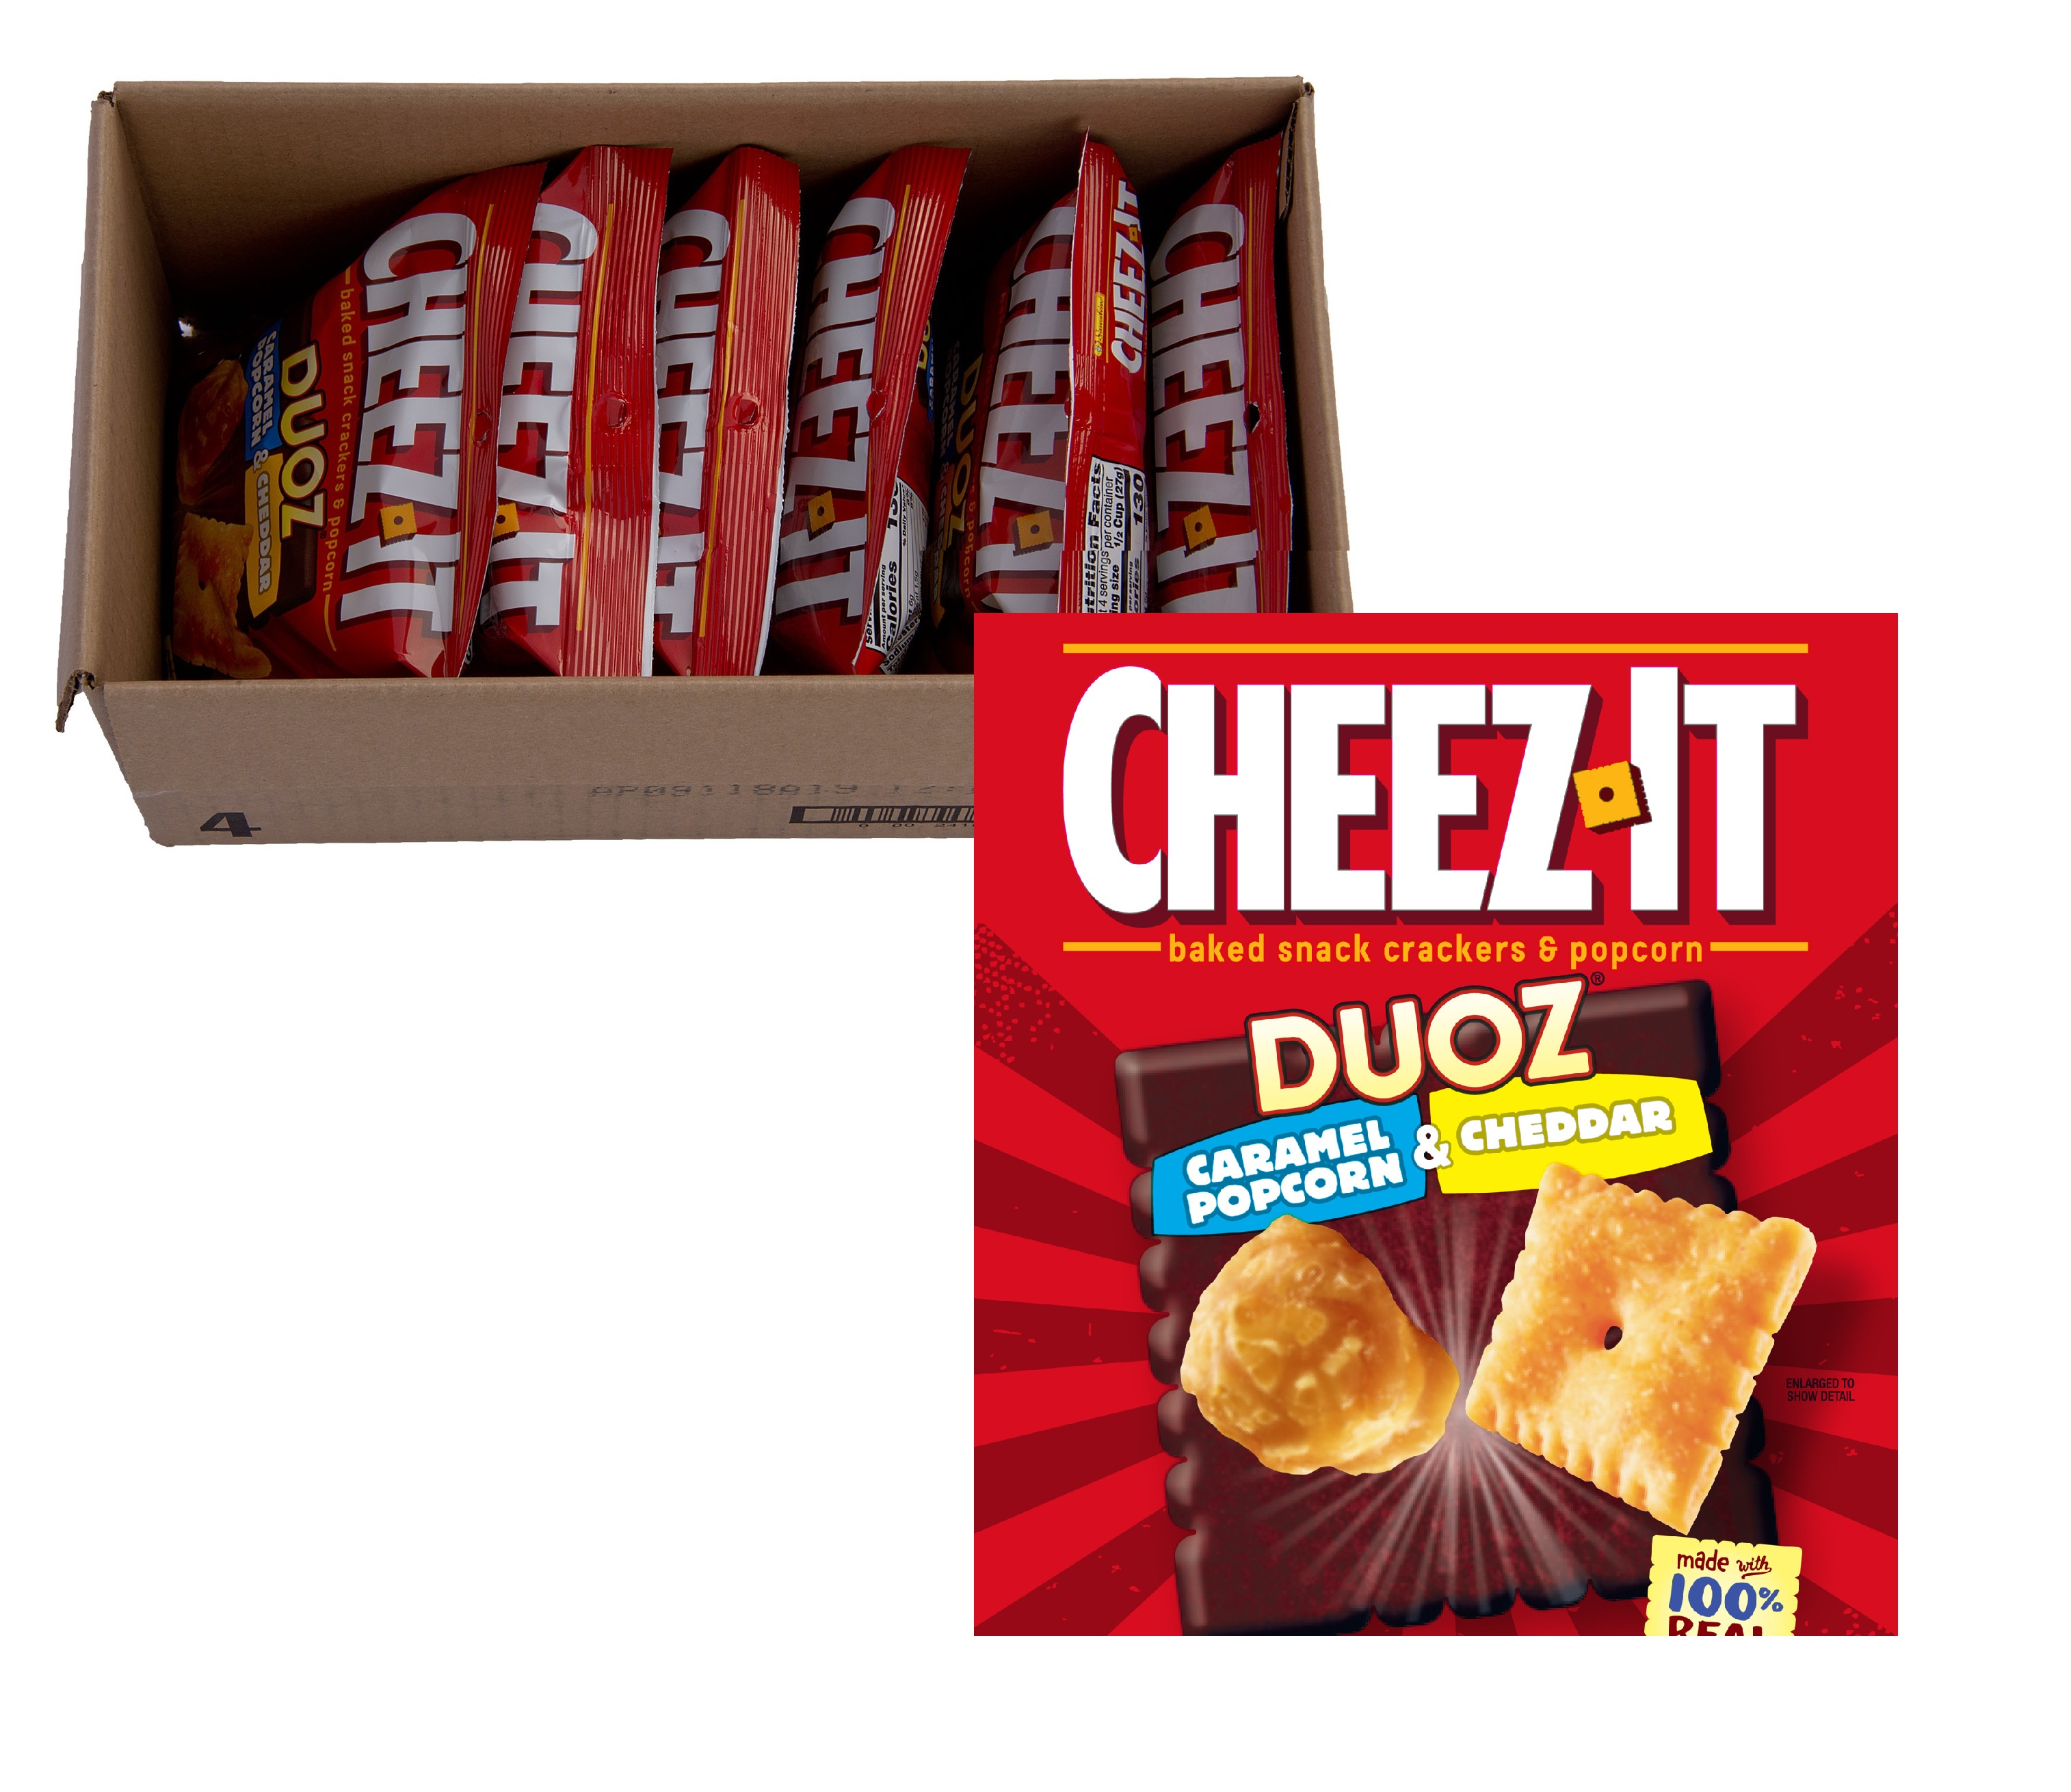 Cheez it duoz caramel popcorn & cheddar 6ct